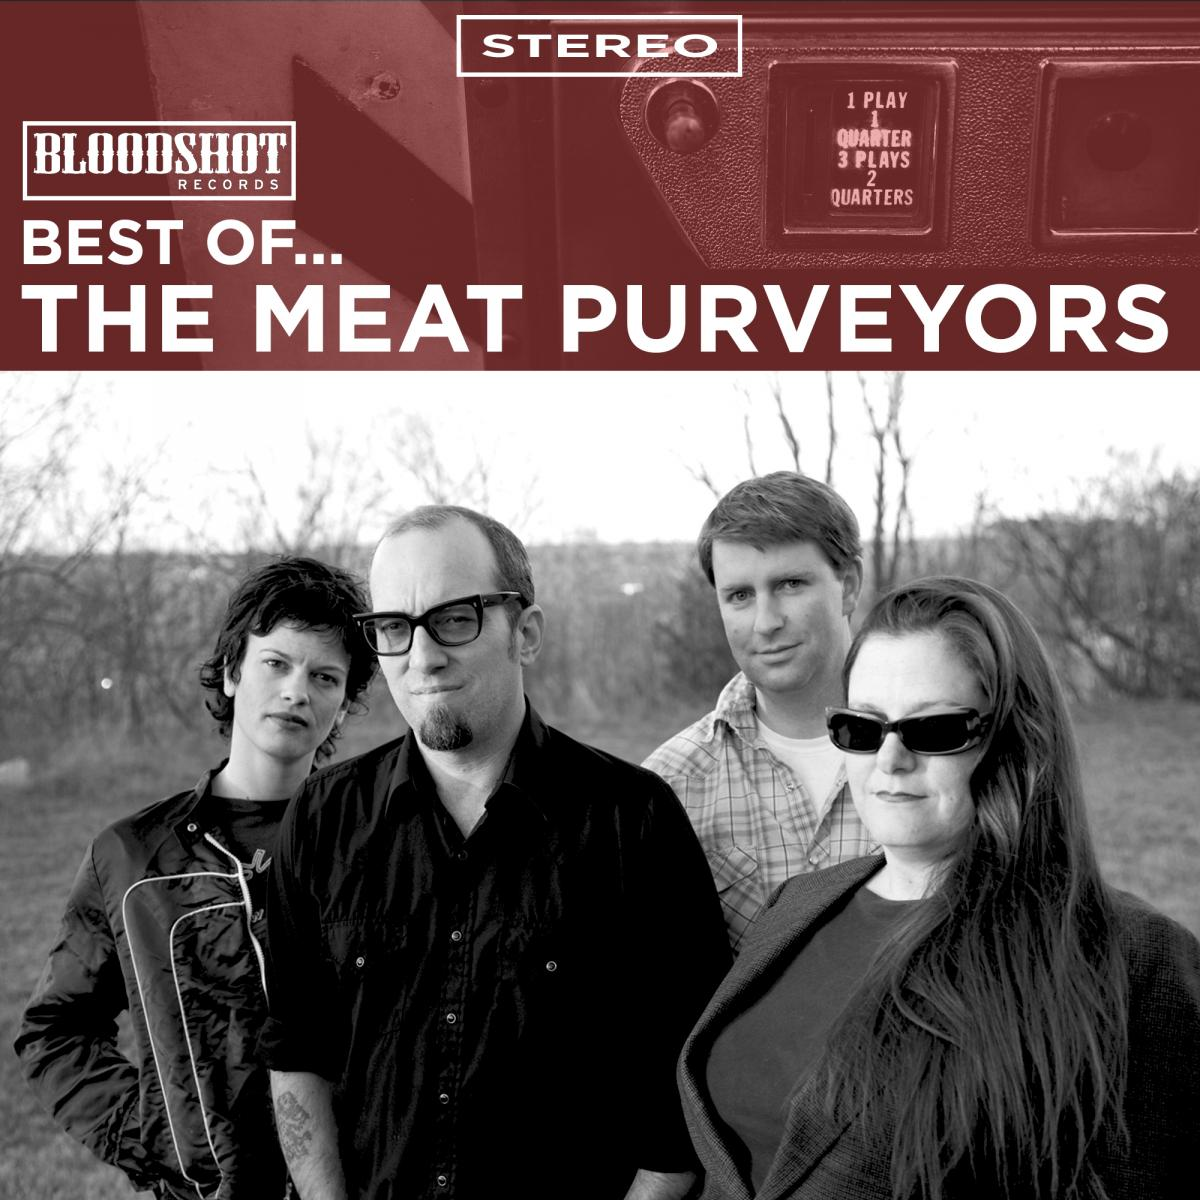 Best of Meat Purveyors Bloodshot Records